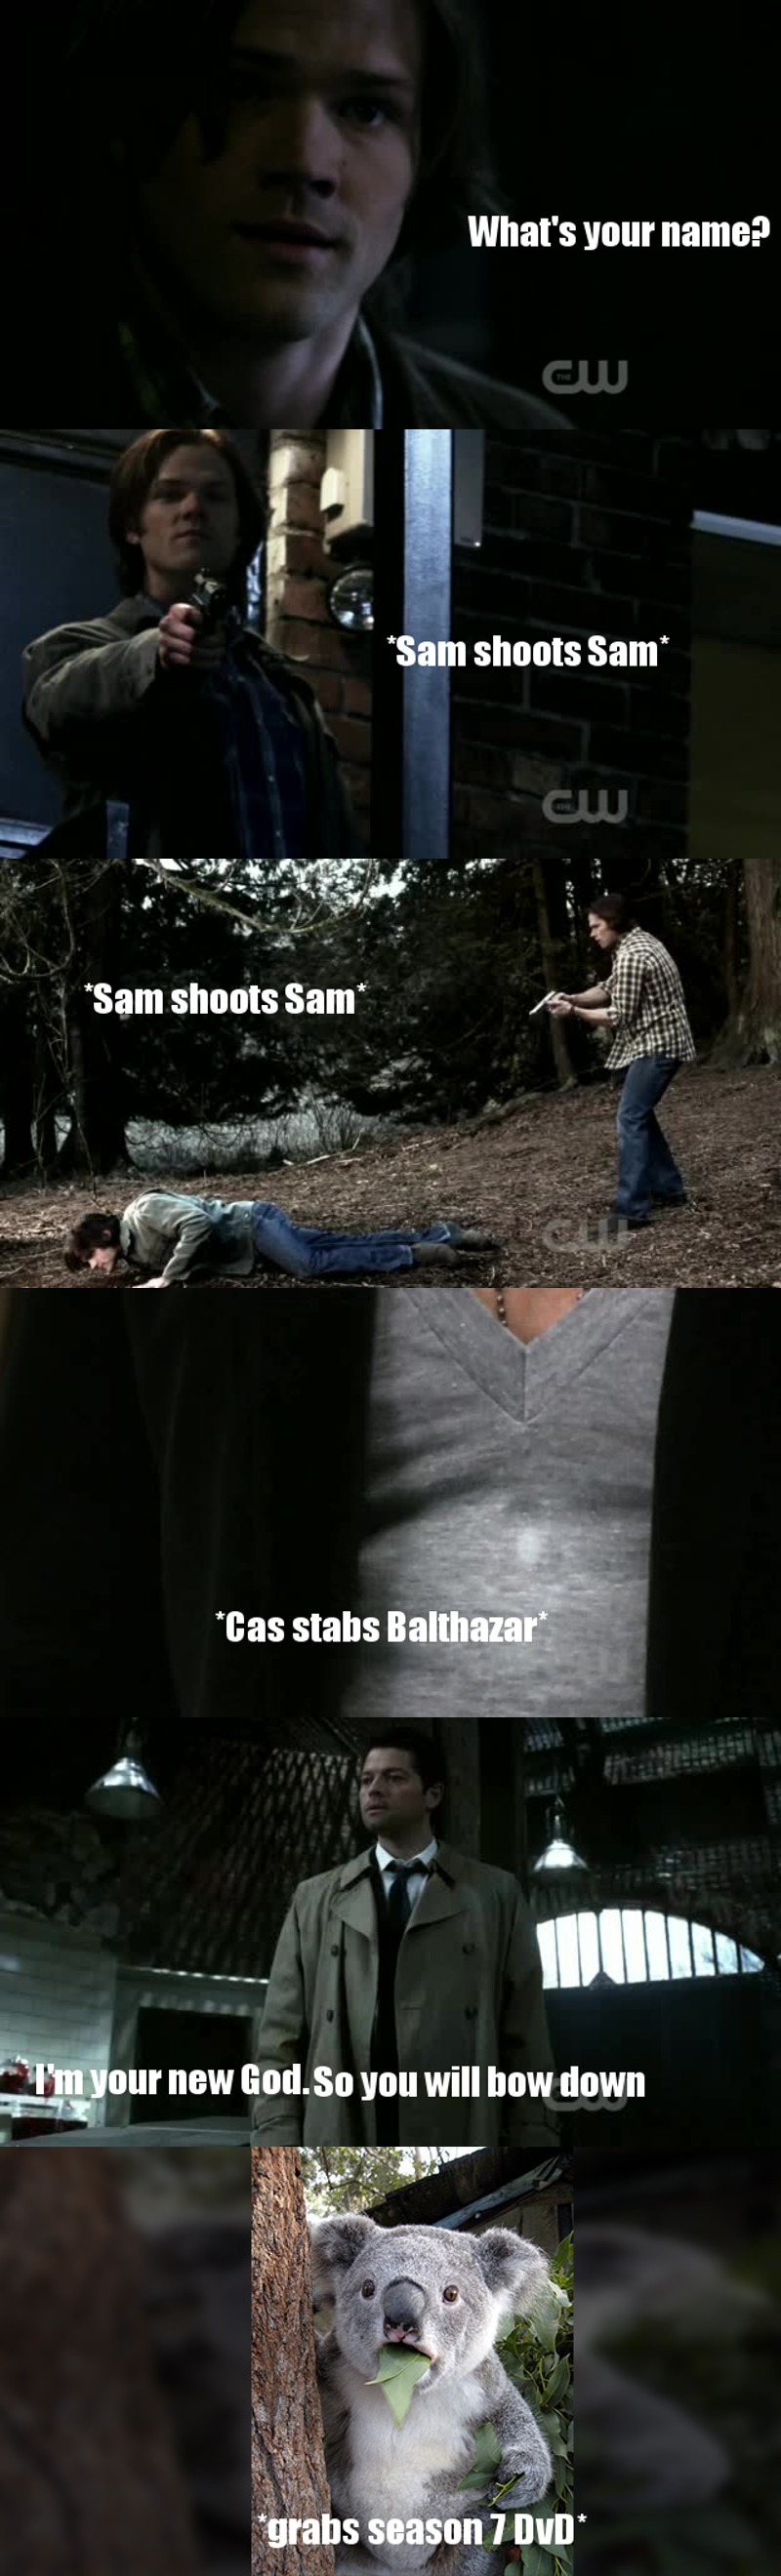 Cas what the fuck happened to you?! I remember the times when you were only a baby in a trench coat :(